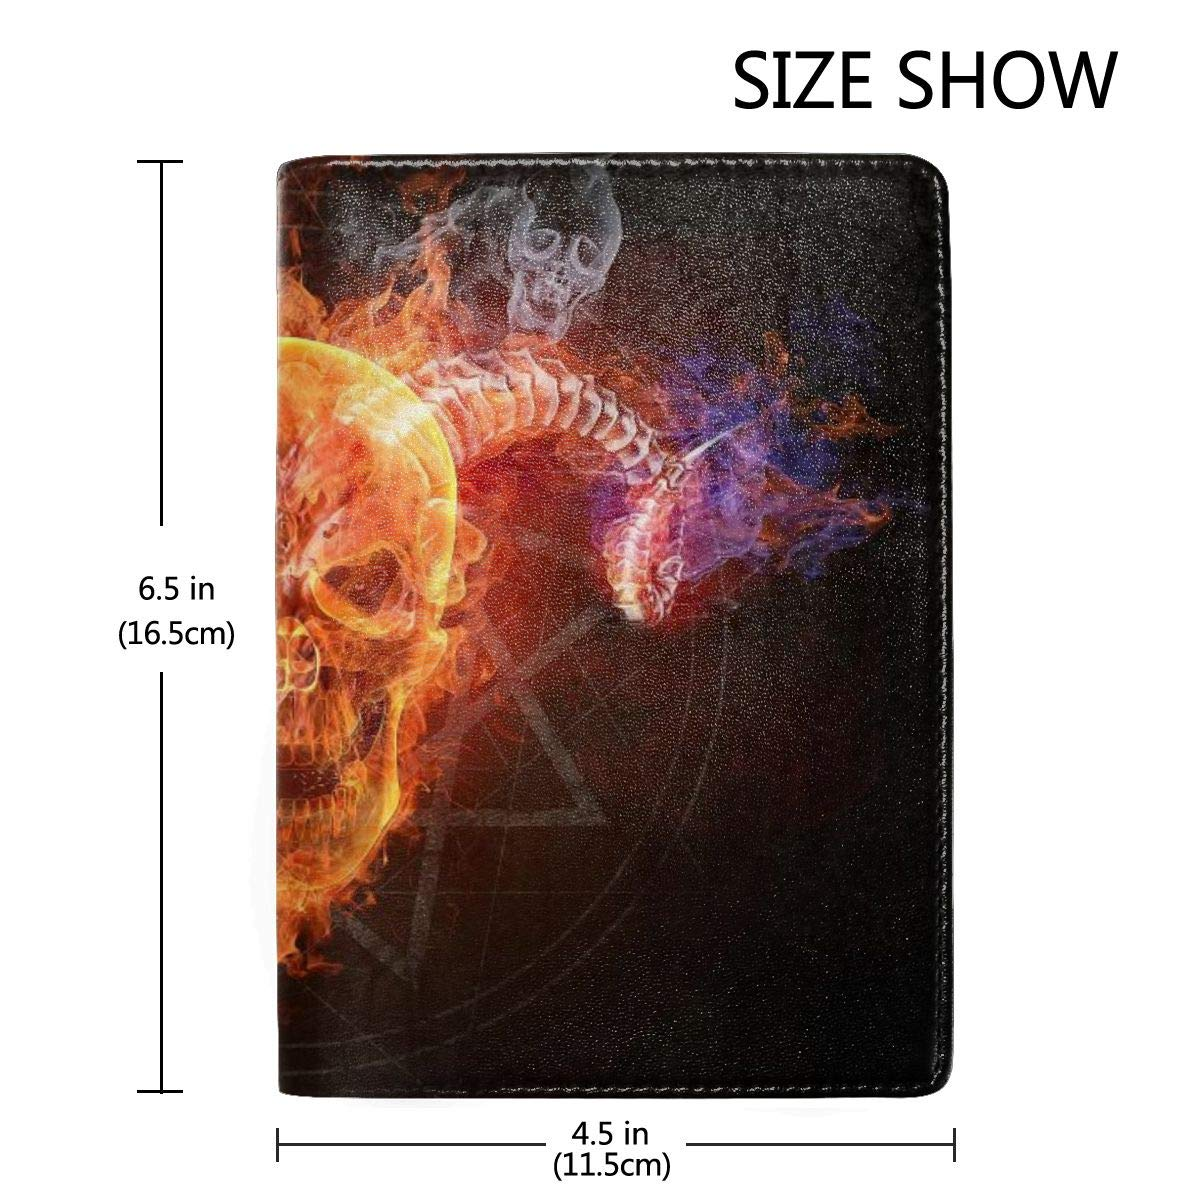 Flaming Skull Goat Fashion Leather Passport Holder Cover Case Travel Wallet 6.5 In